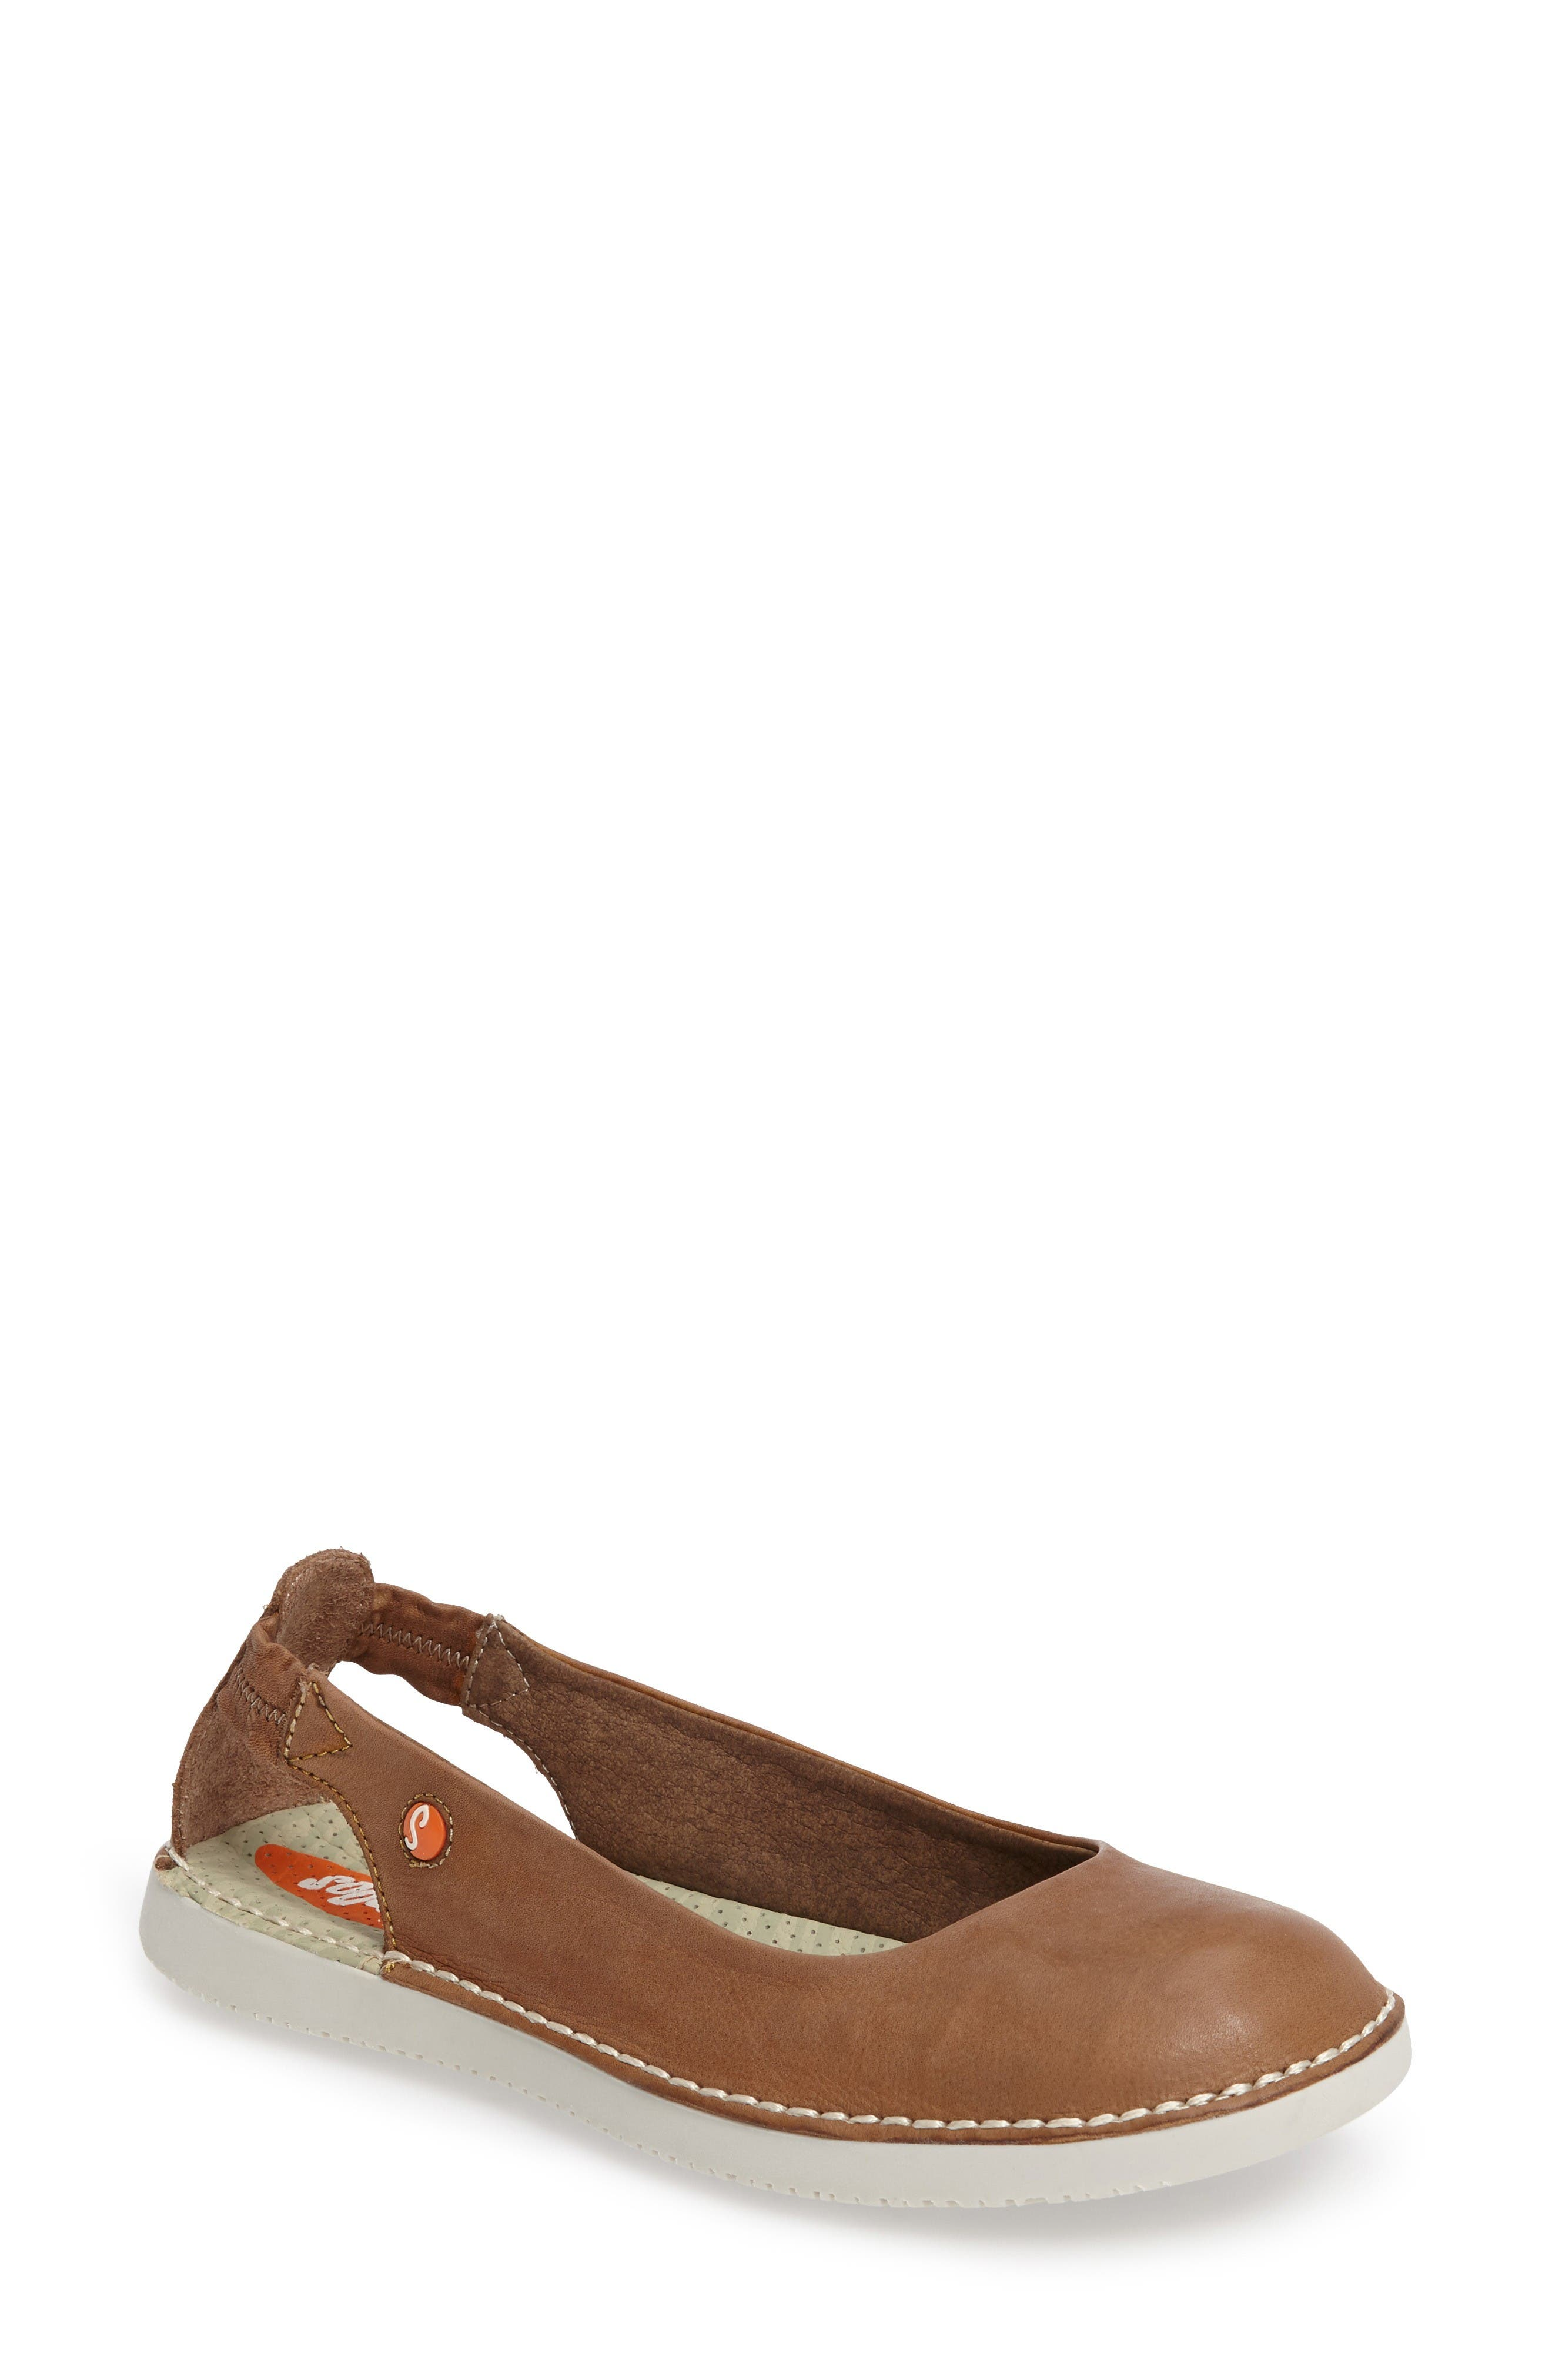 Tor Ballerina Flat,                         Main,                         color, Brown Washed Leather